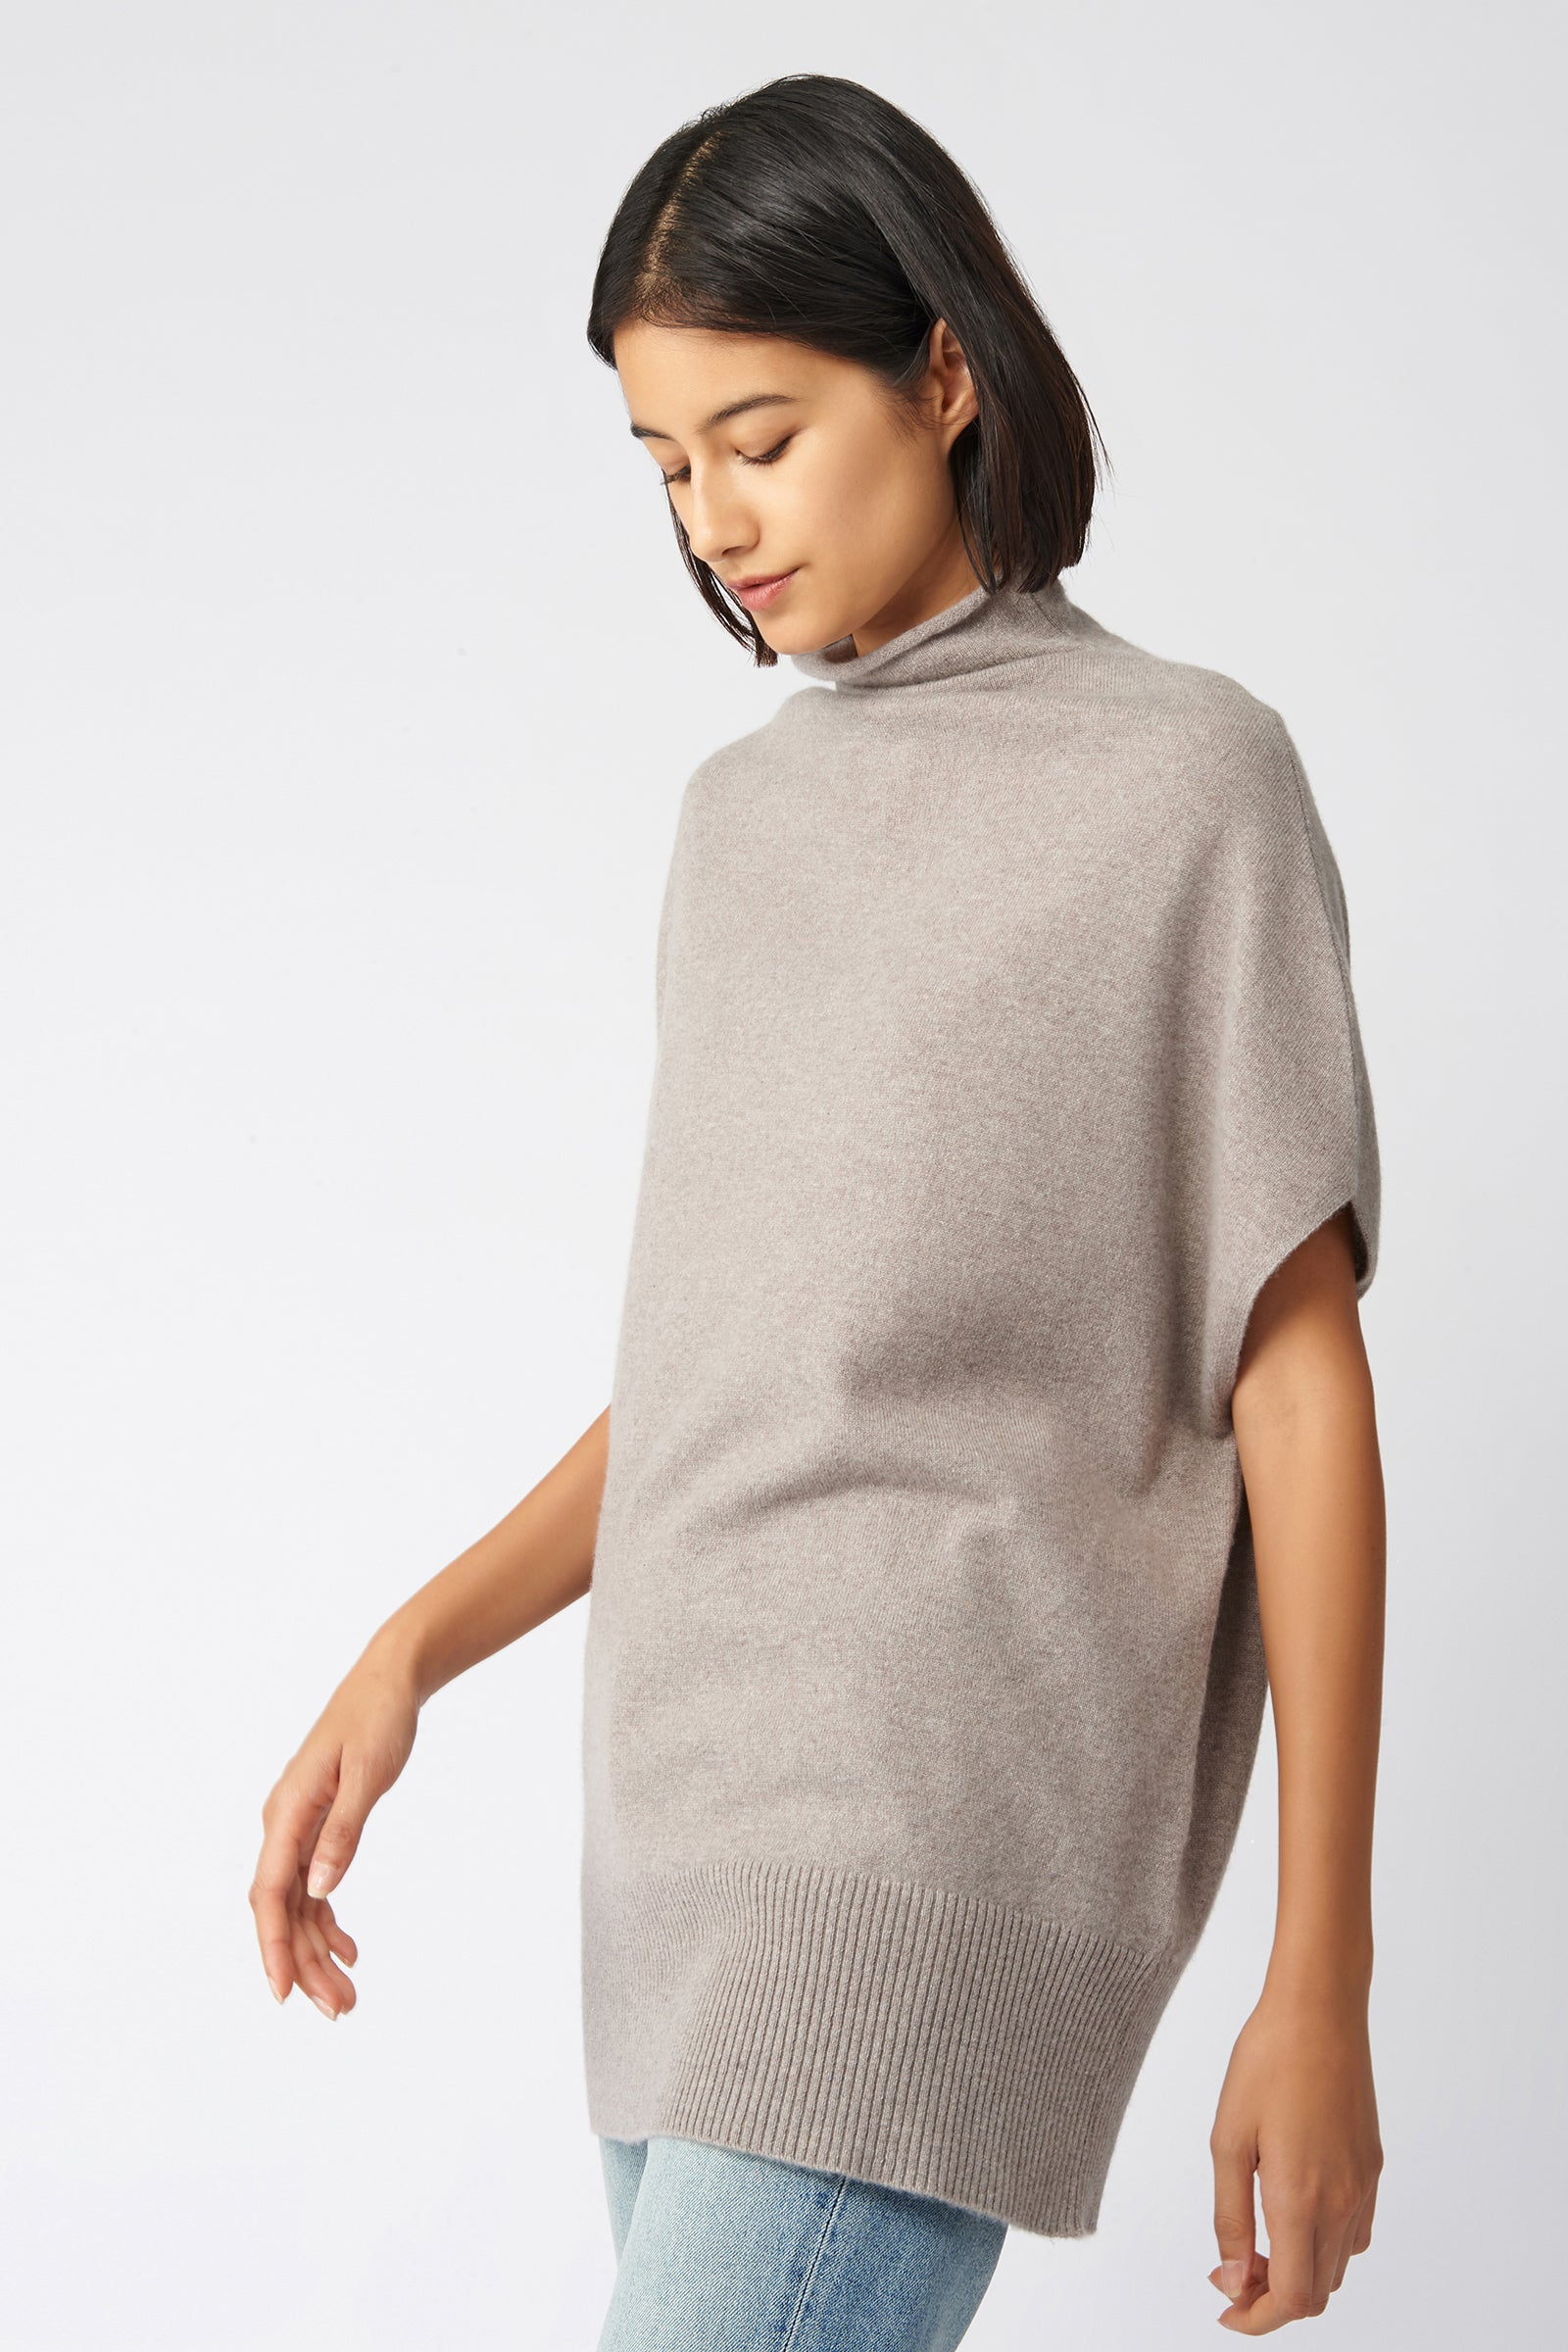 Kal Rieman Cashmere Funnelneck in Drft on Model Side View